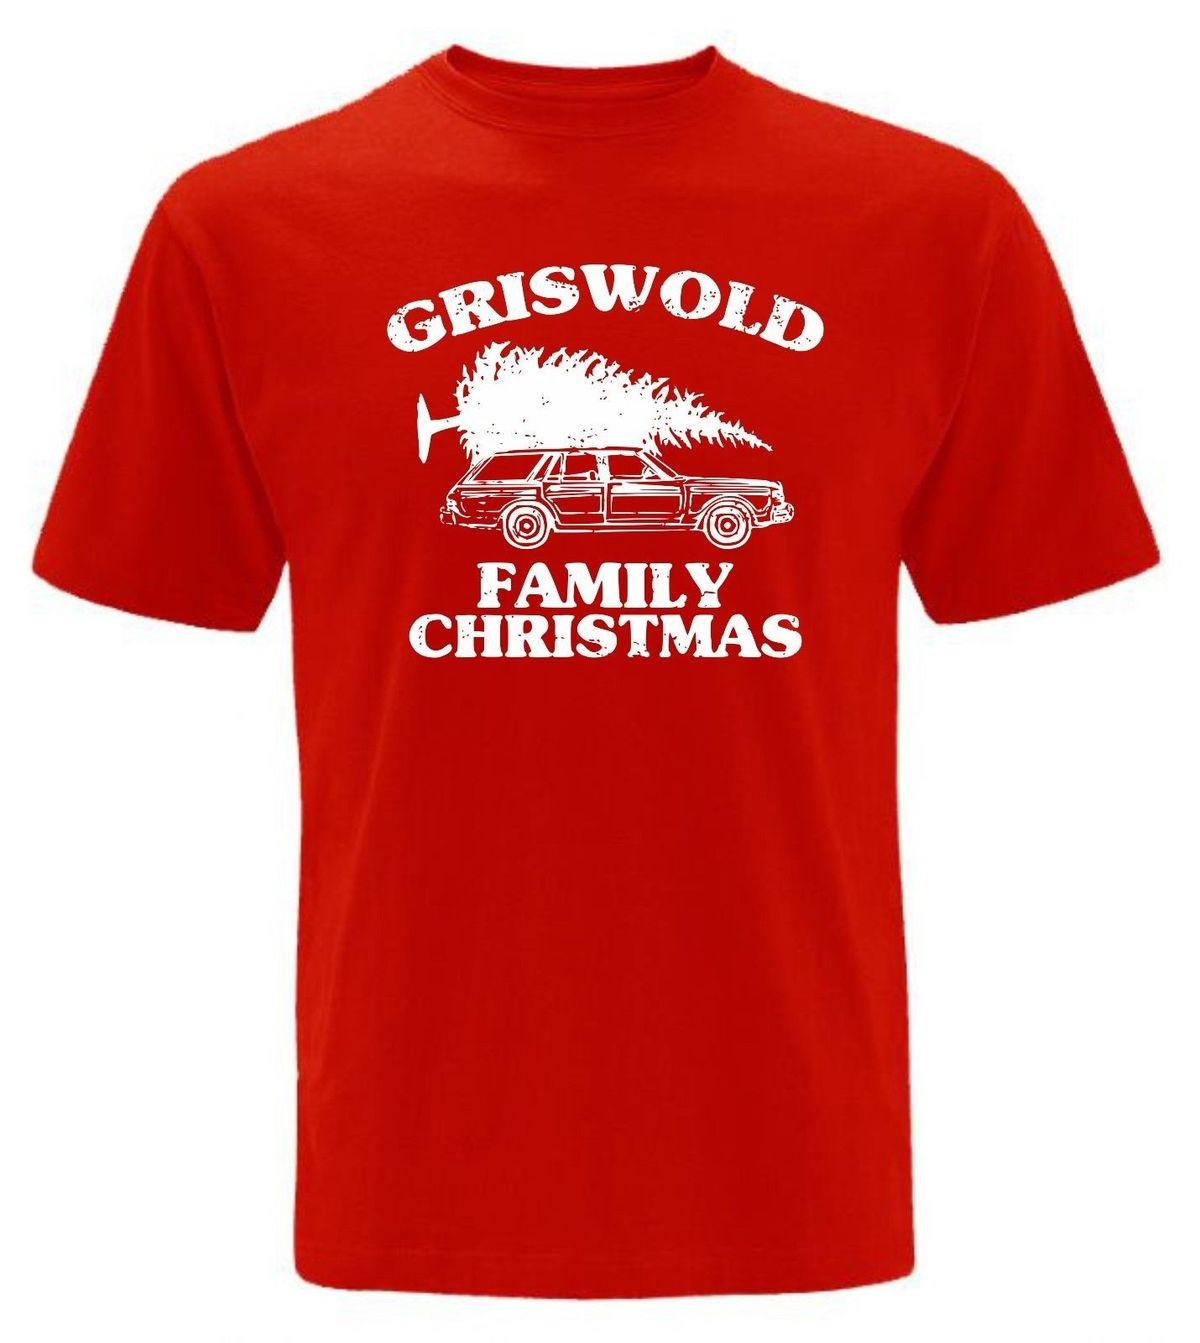 26d6c8ca321 Griswold Family Christmas T Shirt Christmas Vacation All Sizes Jurney Print T  Shirt Cool Xxxtentacion Tshirt Awesome Shirt Designs Funny Slogan T Shirts  ...